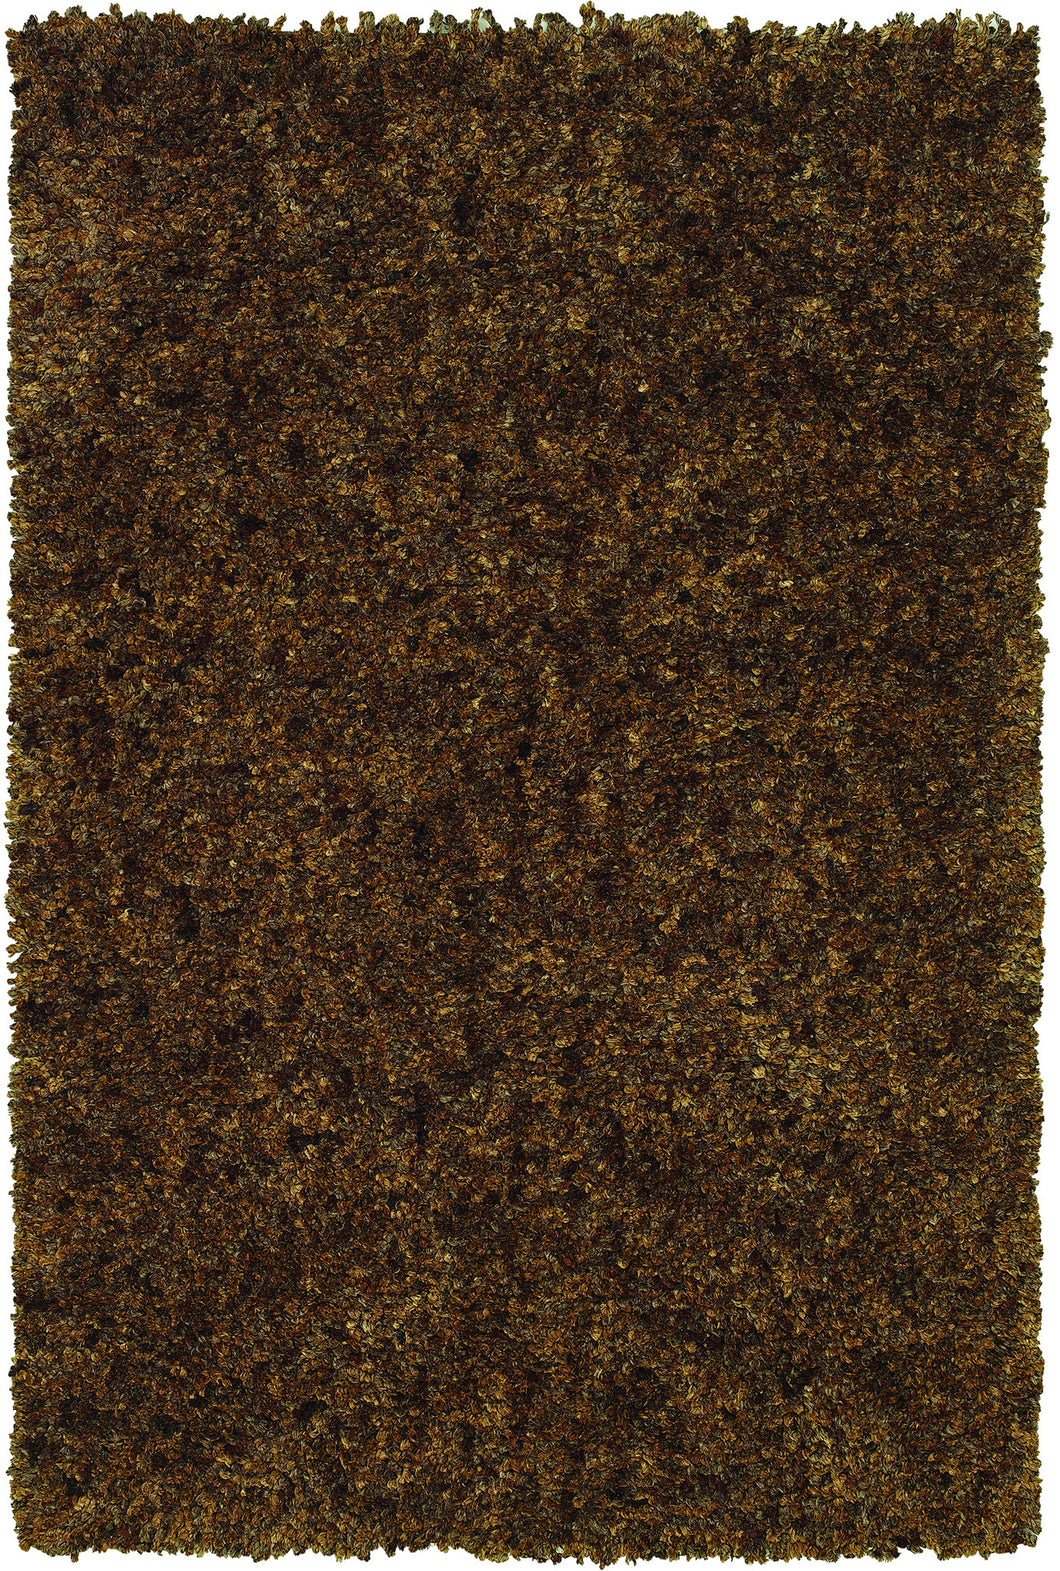 Dalyn Utopia Fudge Ut100 Area Rug